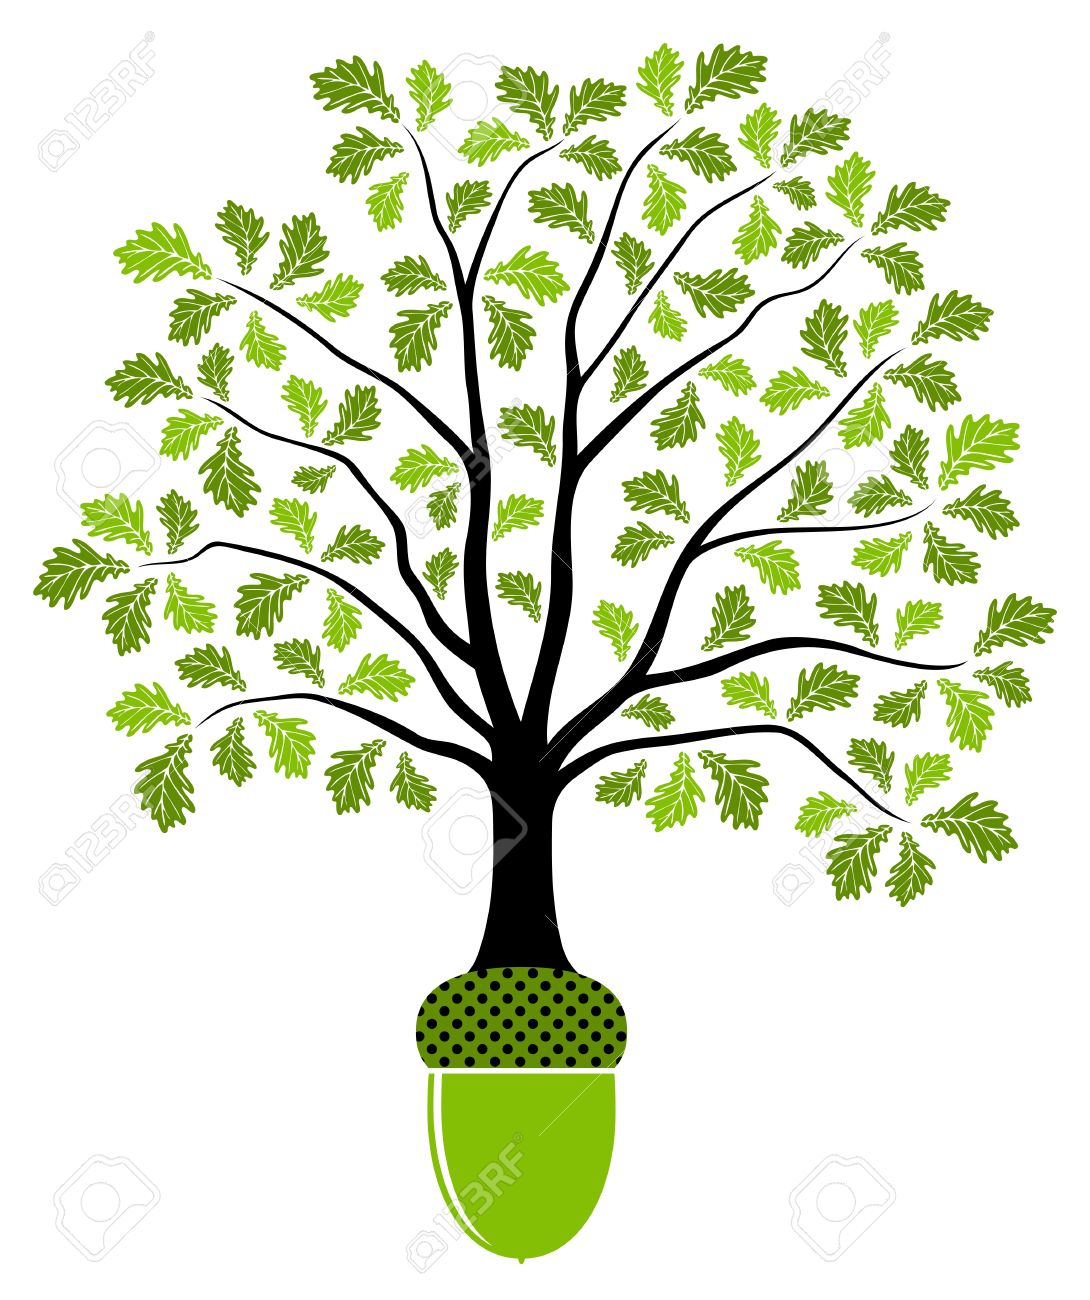 vector oak tree growing from acorn isolated on white background rh 123rf com vector oak tree with roots free vector oak tree